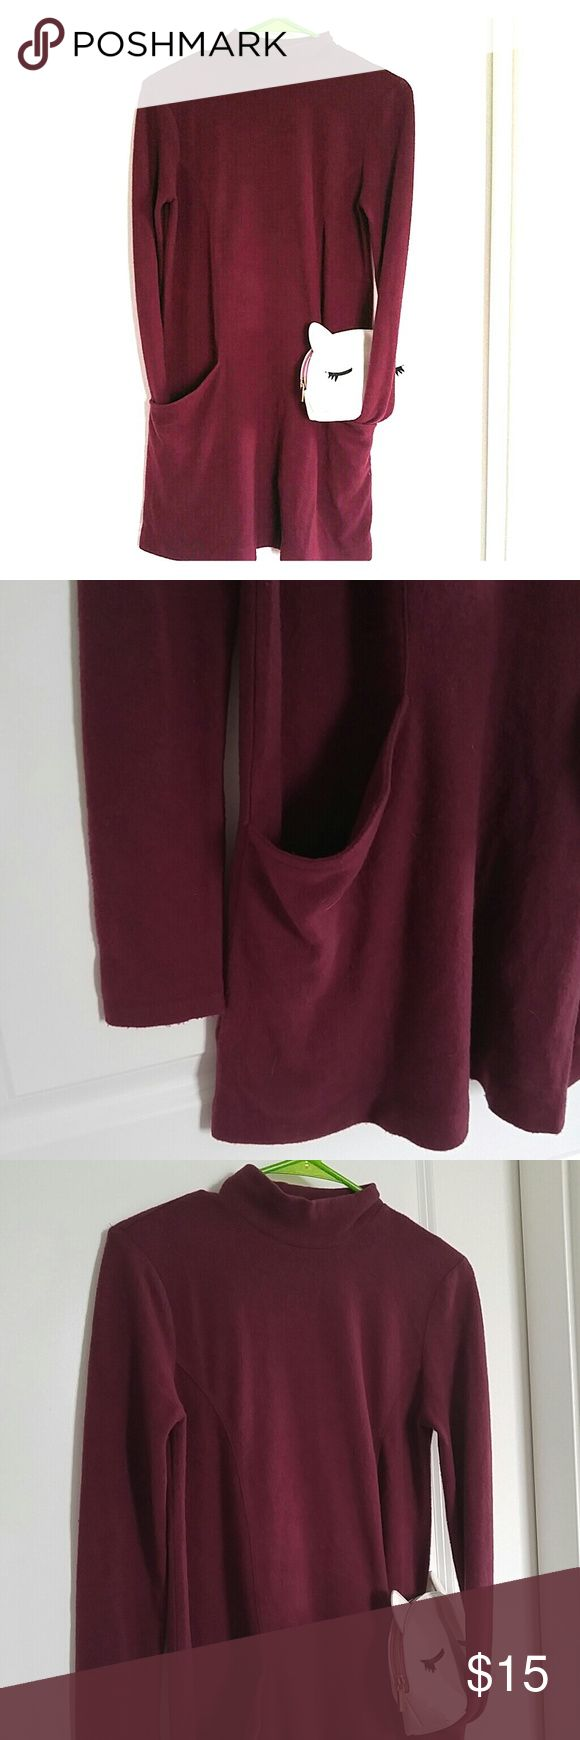 New Look Wine Mock Neck Lounge Fleece Aline Dress Fleece aline dress with pockets by New Look. Mock neck. Color is represented in cover photo. Perfect dress to pair with boots for a day of errands, casual events, or lounging at home.  Great condition-Hardly worn and no pilling/stain. New Look Dresses Mini